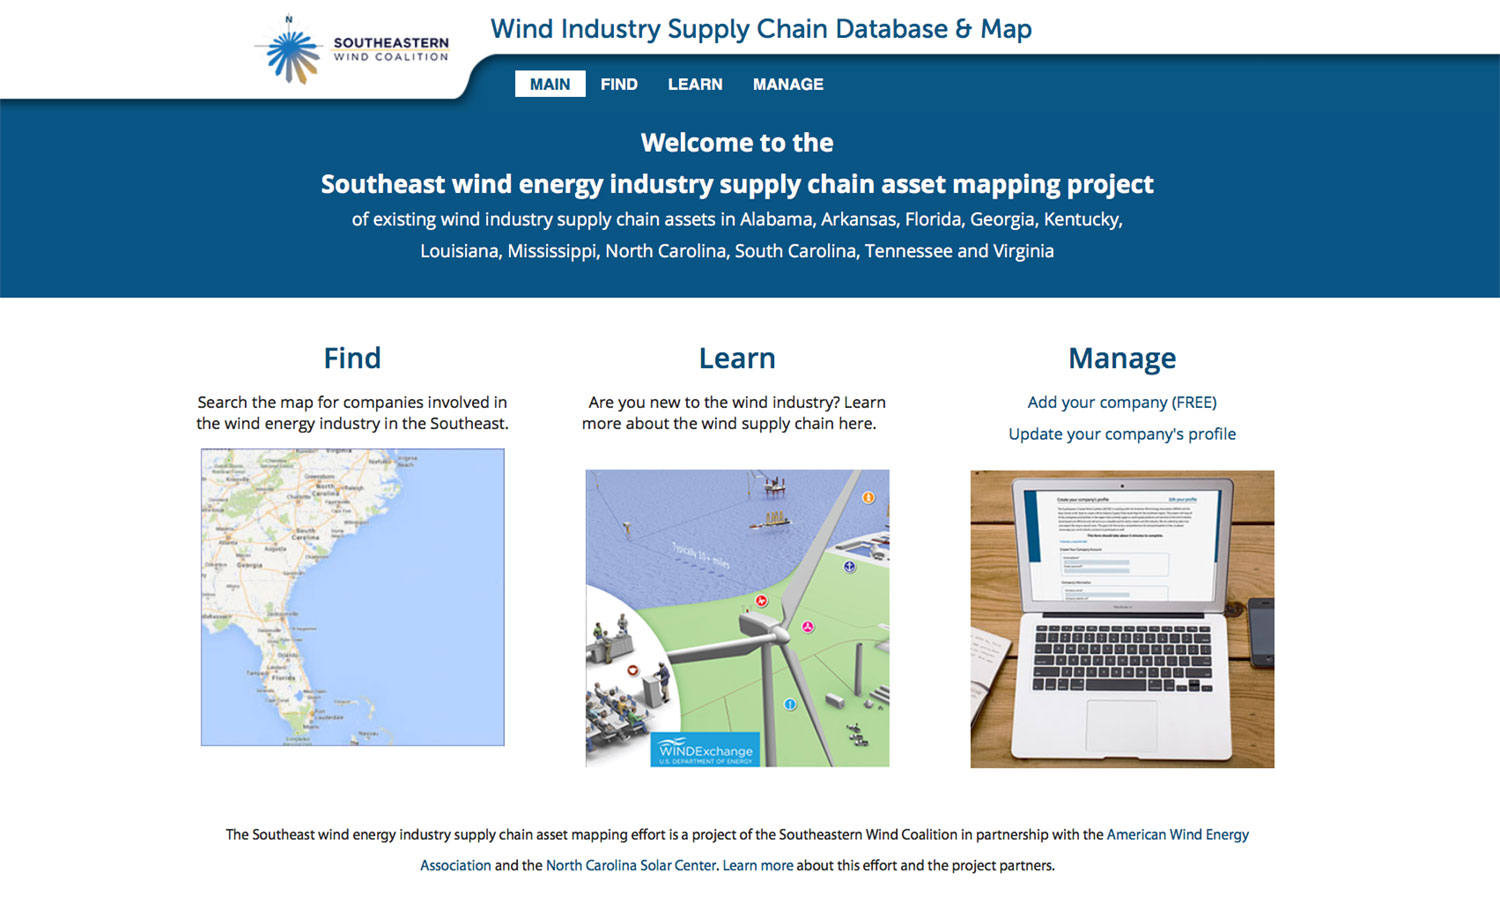 Wind Industry Supply Chain Database and Map